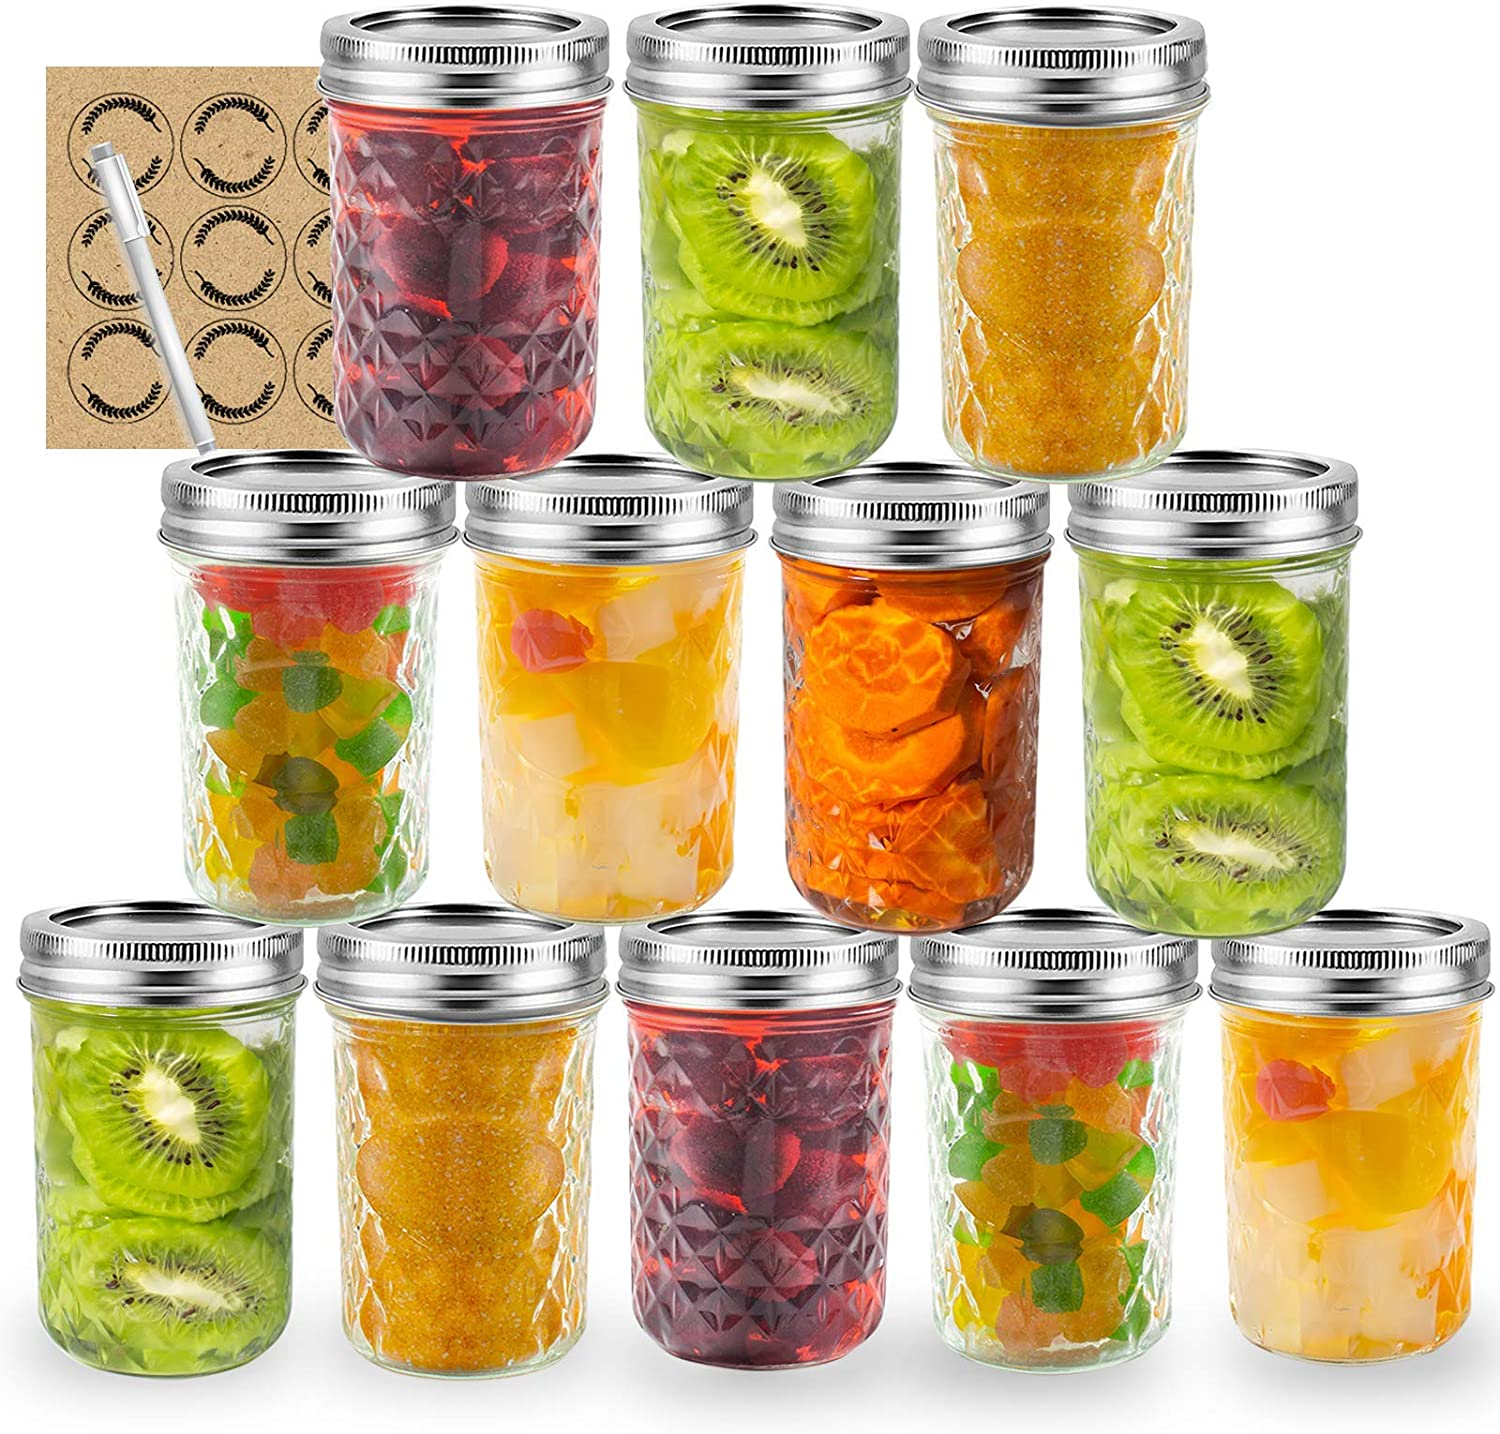 MASON JAR 8OZ 12PCS with Labels and pen, LAPANDA Regular Mouth Canning Jars with Lids and Bands, Quilted Crystal Jars Ideal for Jams, Jellies, Conserves, Preserves, Fruit Syrups, Chutneys, and Pizza Sauce